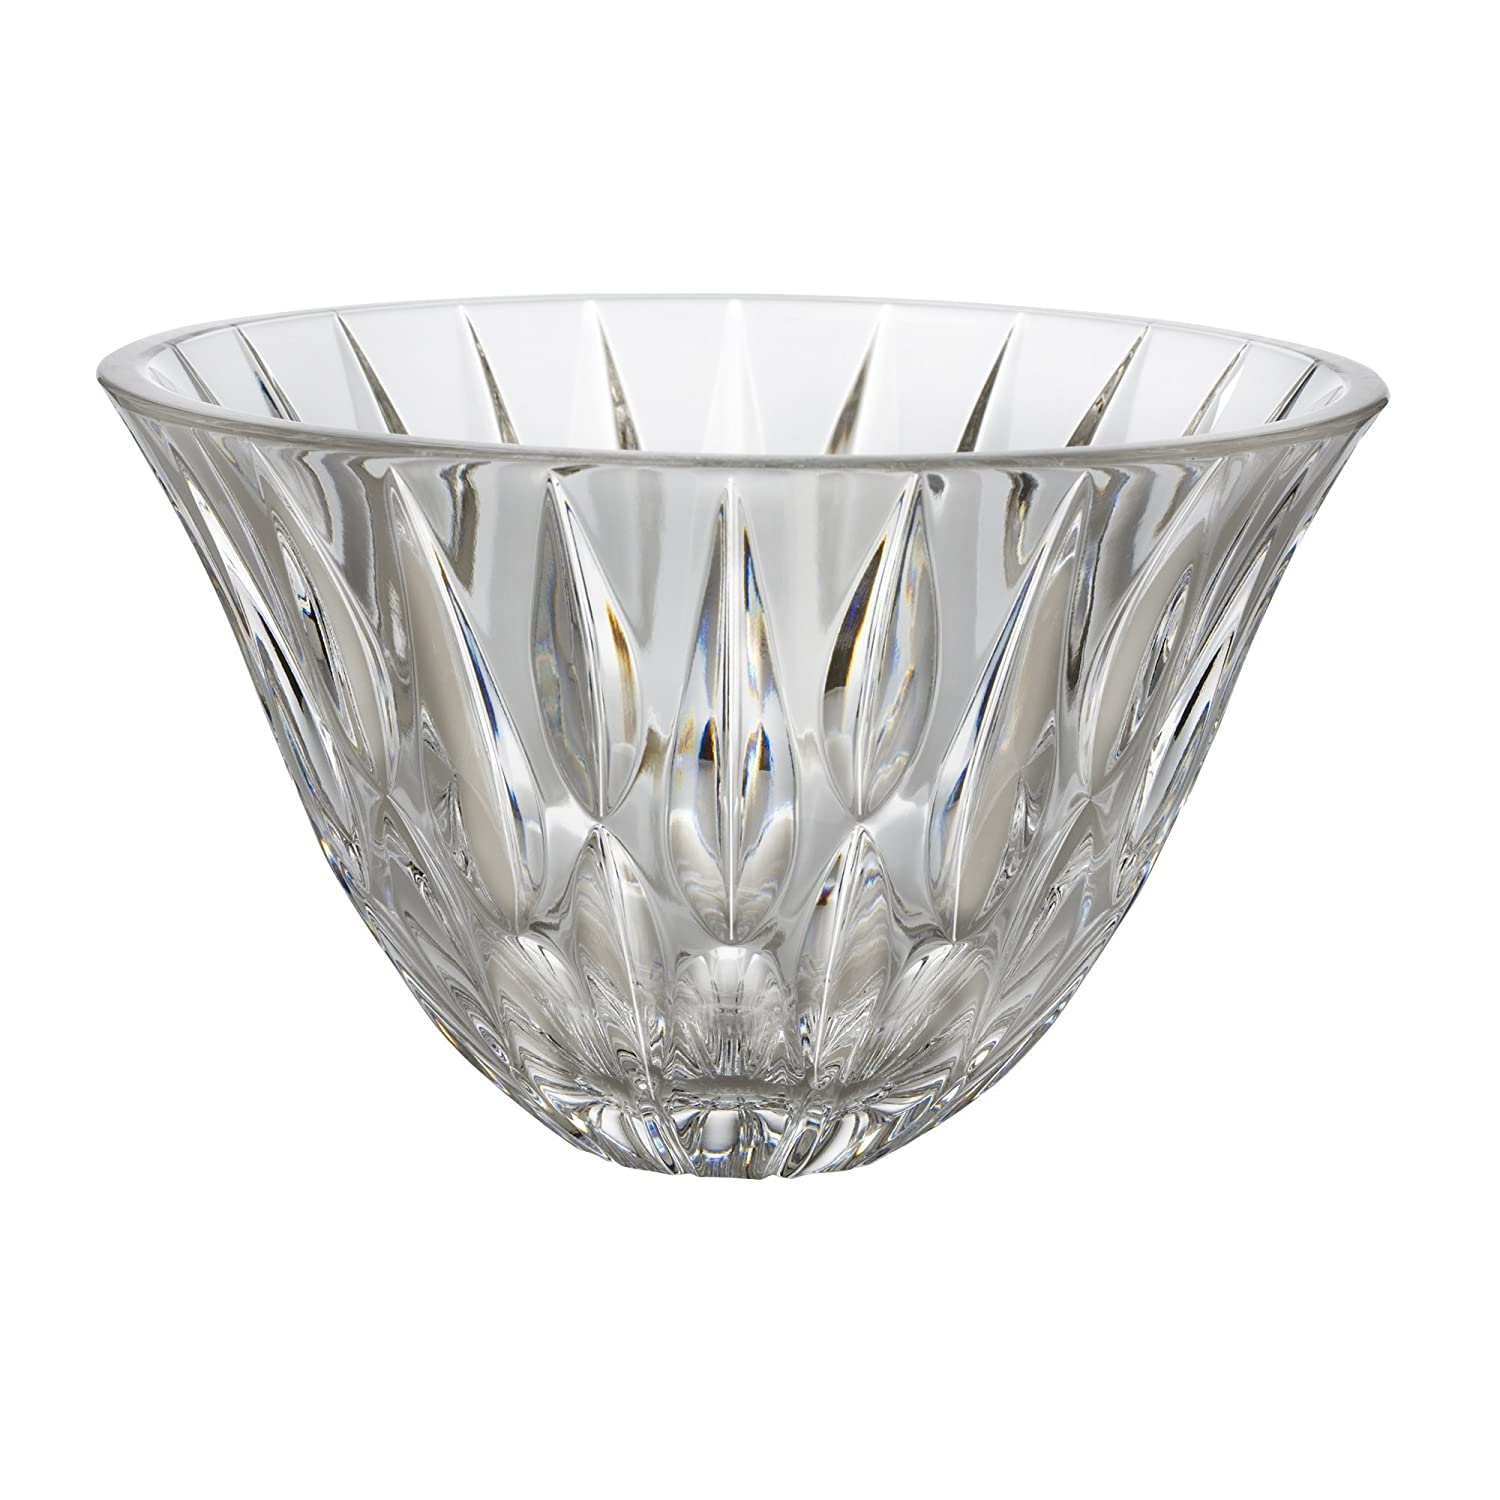 Amazon marquis by waterford rainfall 8 bowl decorative amazon marquis by waterford rainfall 8 bowl decorative bowls kitchen dining reviewsmspy